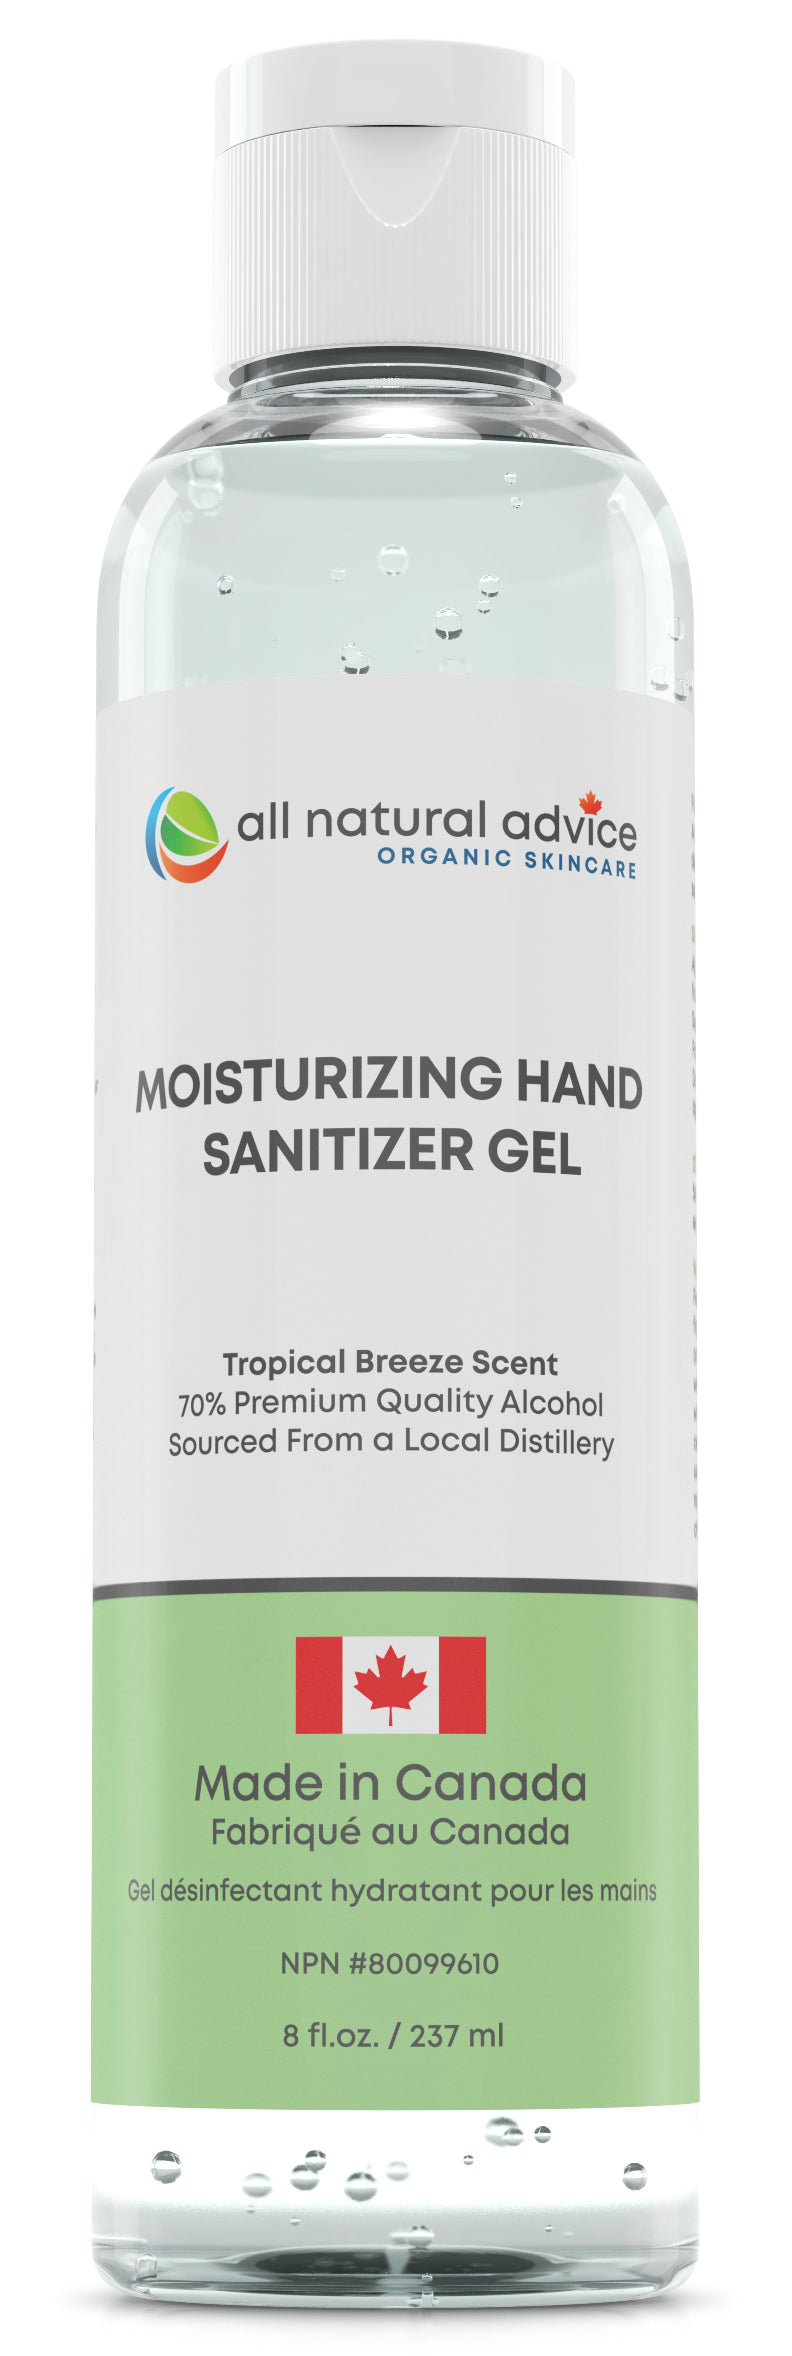 PACK of 3 x 8oz NEW!  PREMIUM MOISTURIZING  HAND SANITIZER Antiseptic with 70% Alcohol, Moisturizing your Hands with Aloe and Essential Oils - Made in Canada